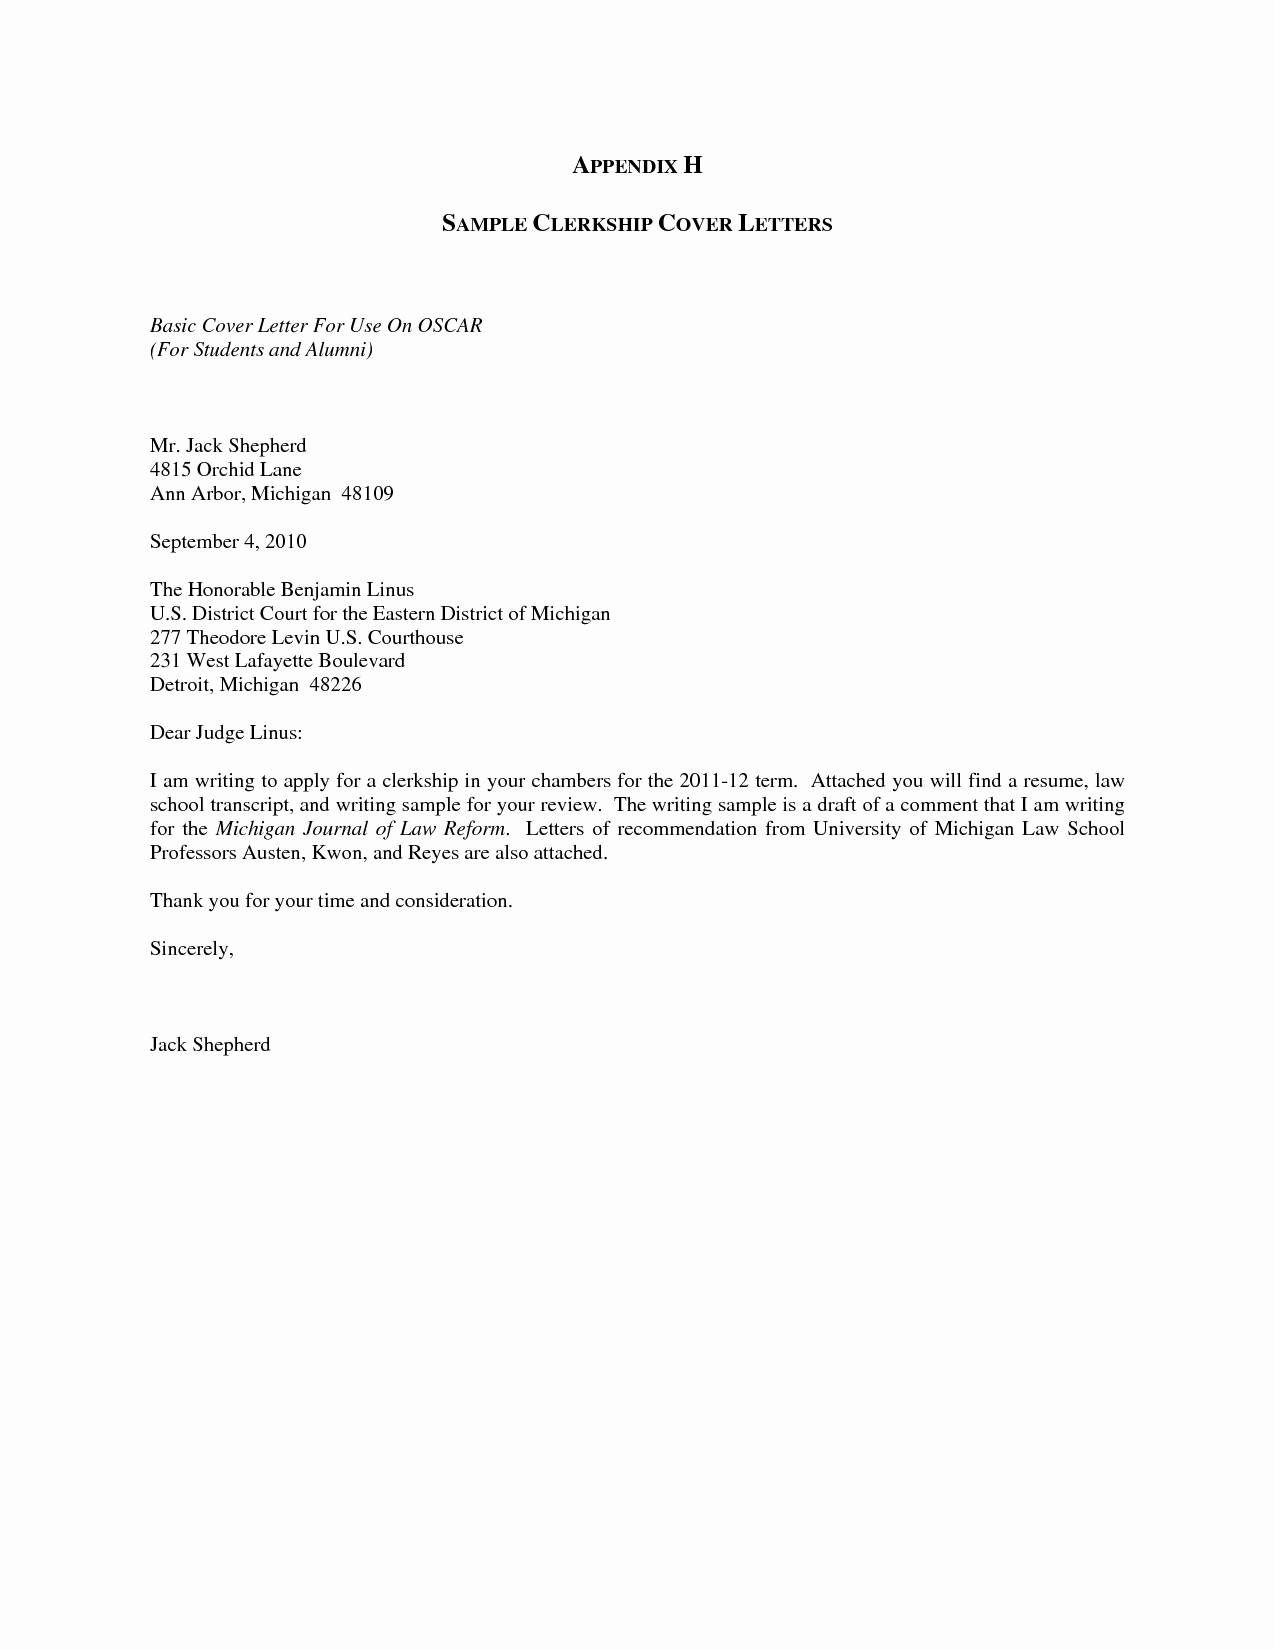 Simple Job Cover Letter Examples Awesome Letter Template Category Page 2 Efoza